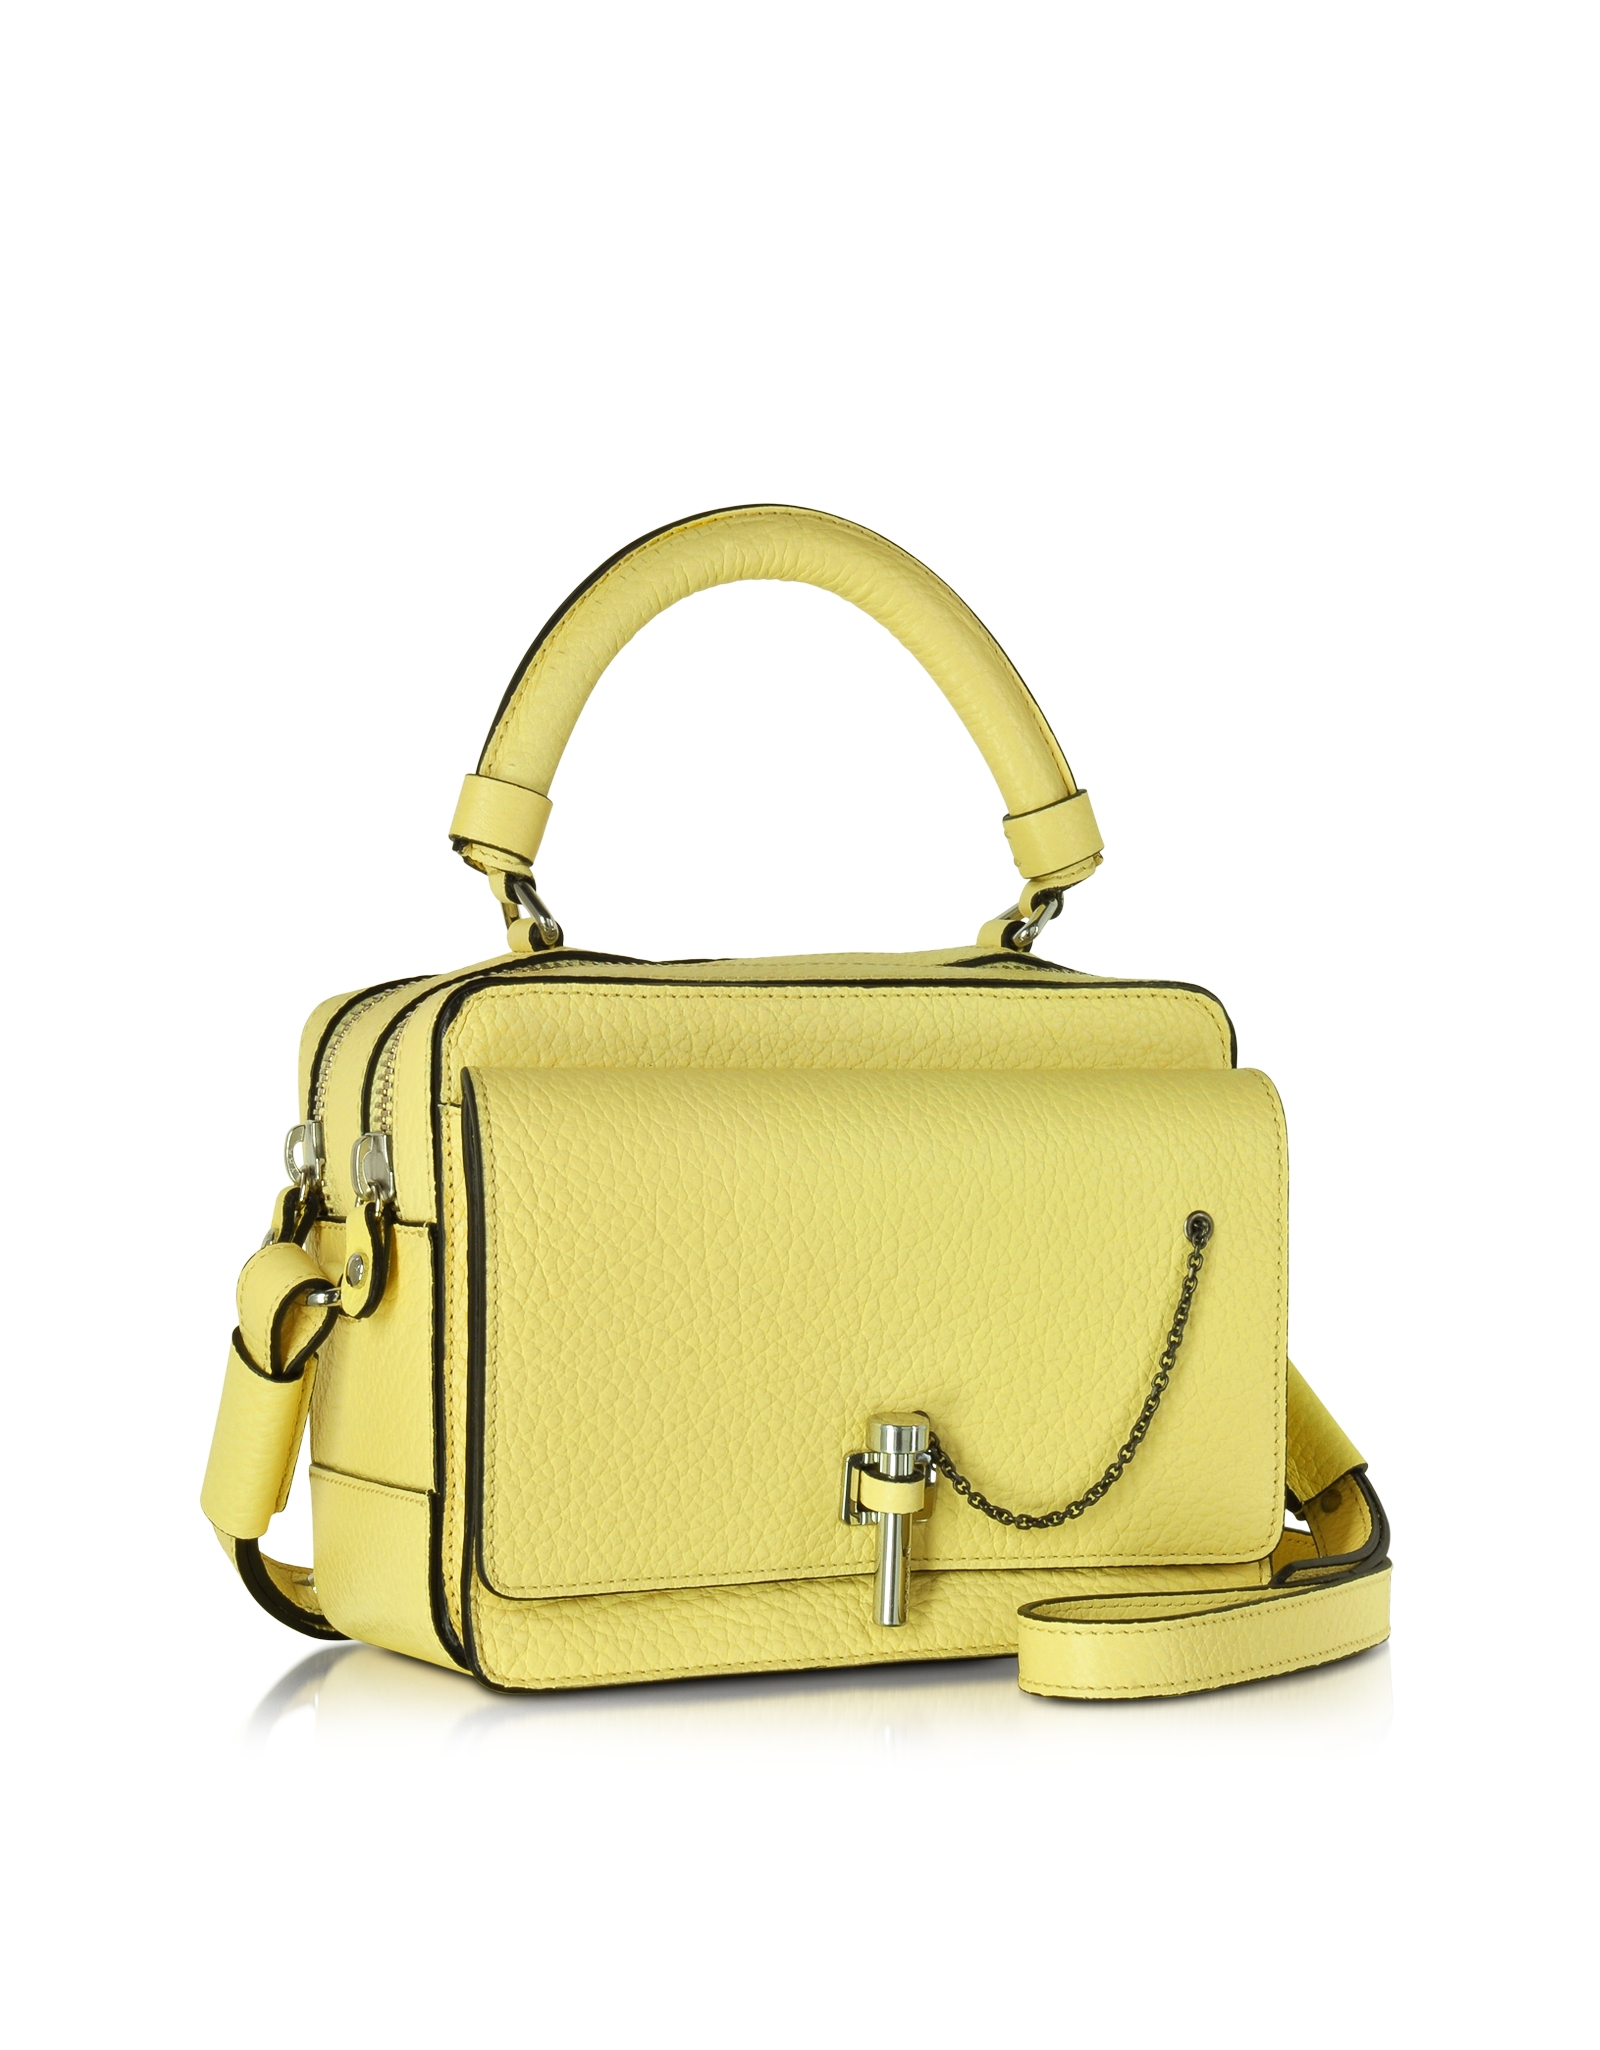 d796cd48912 Carven Malher Petit Jaune Pale Leather Camera Bag in Yellow - Lyst